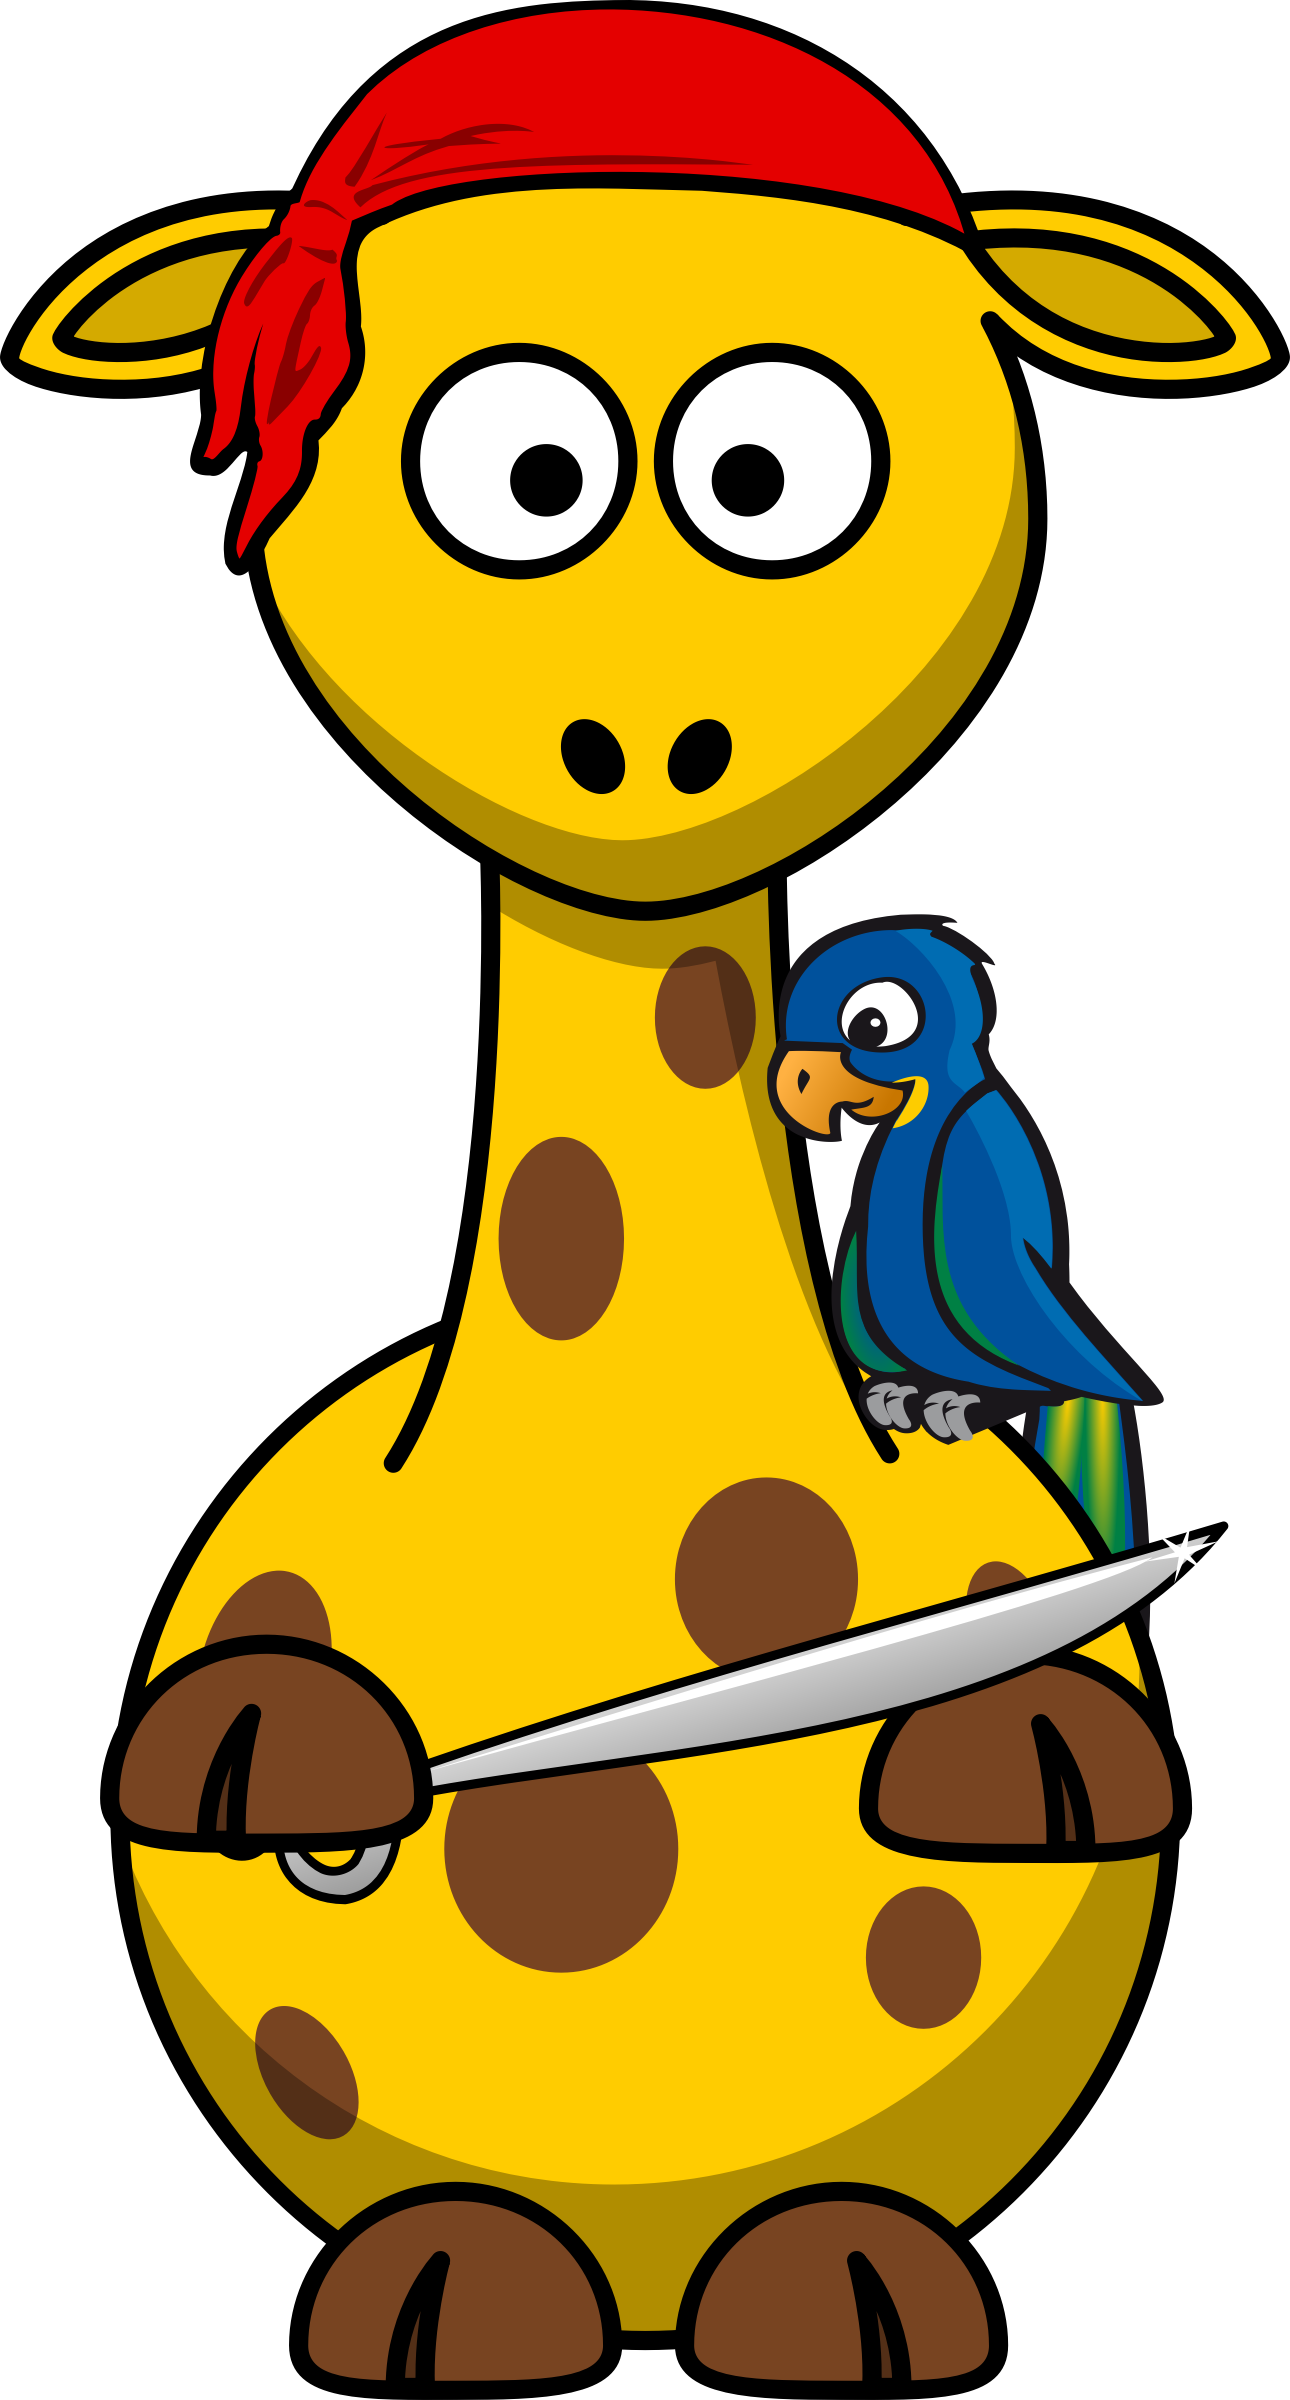 Giraffe Pirate by Bingenberg